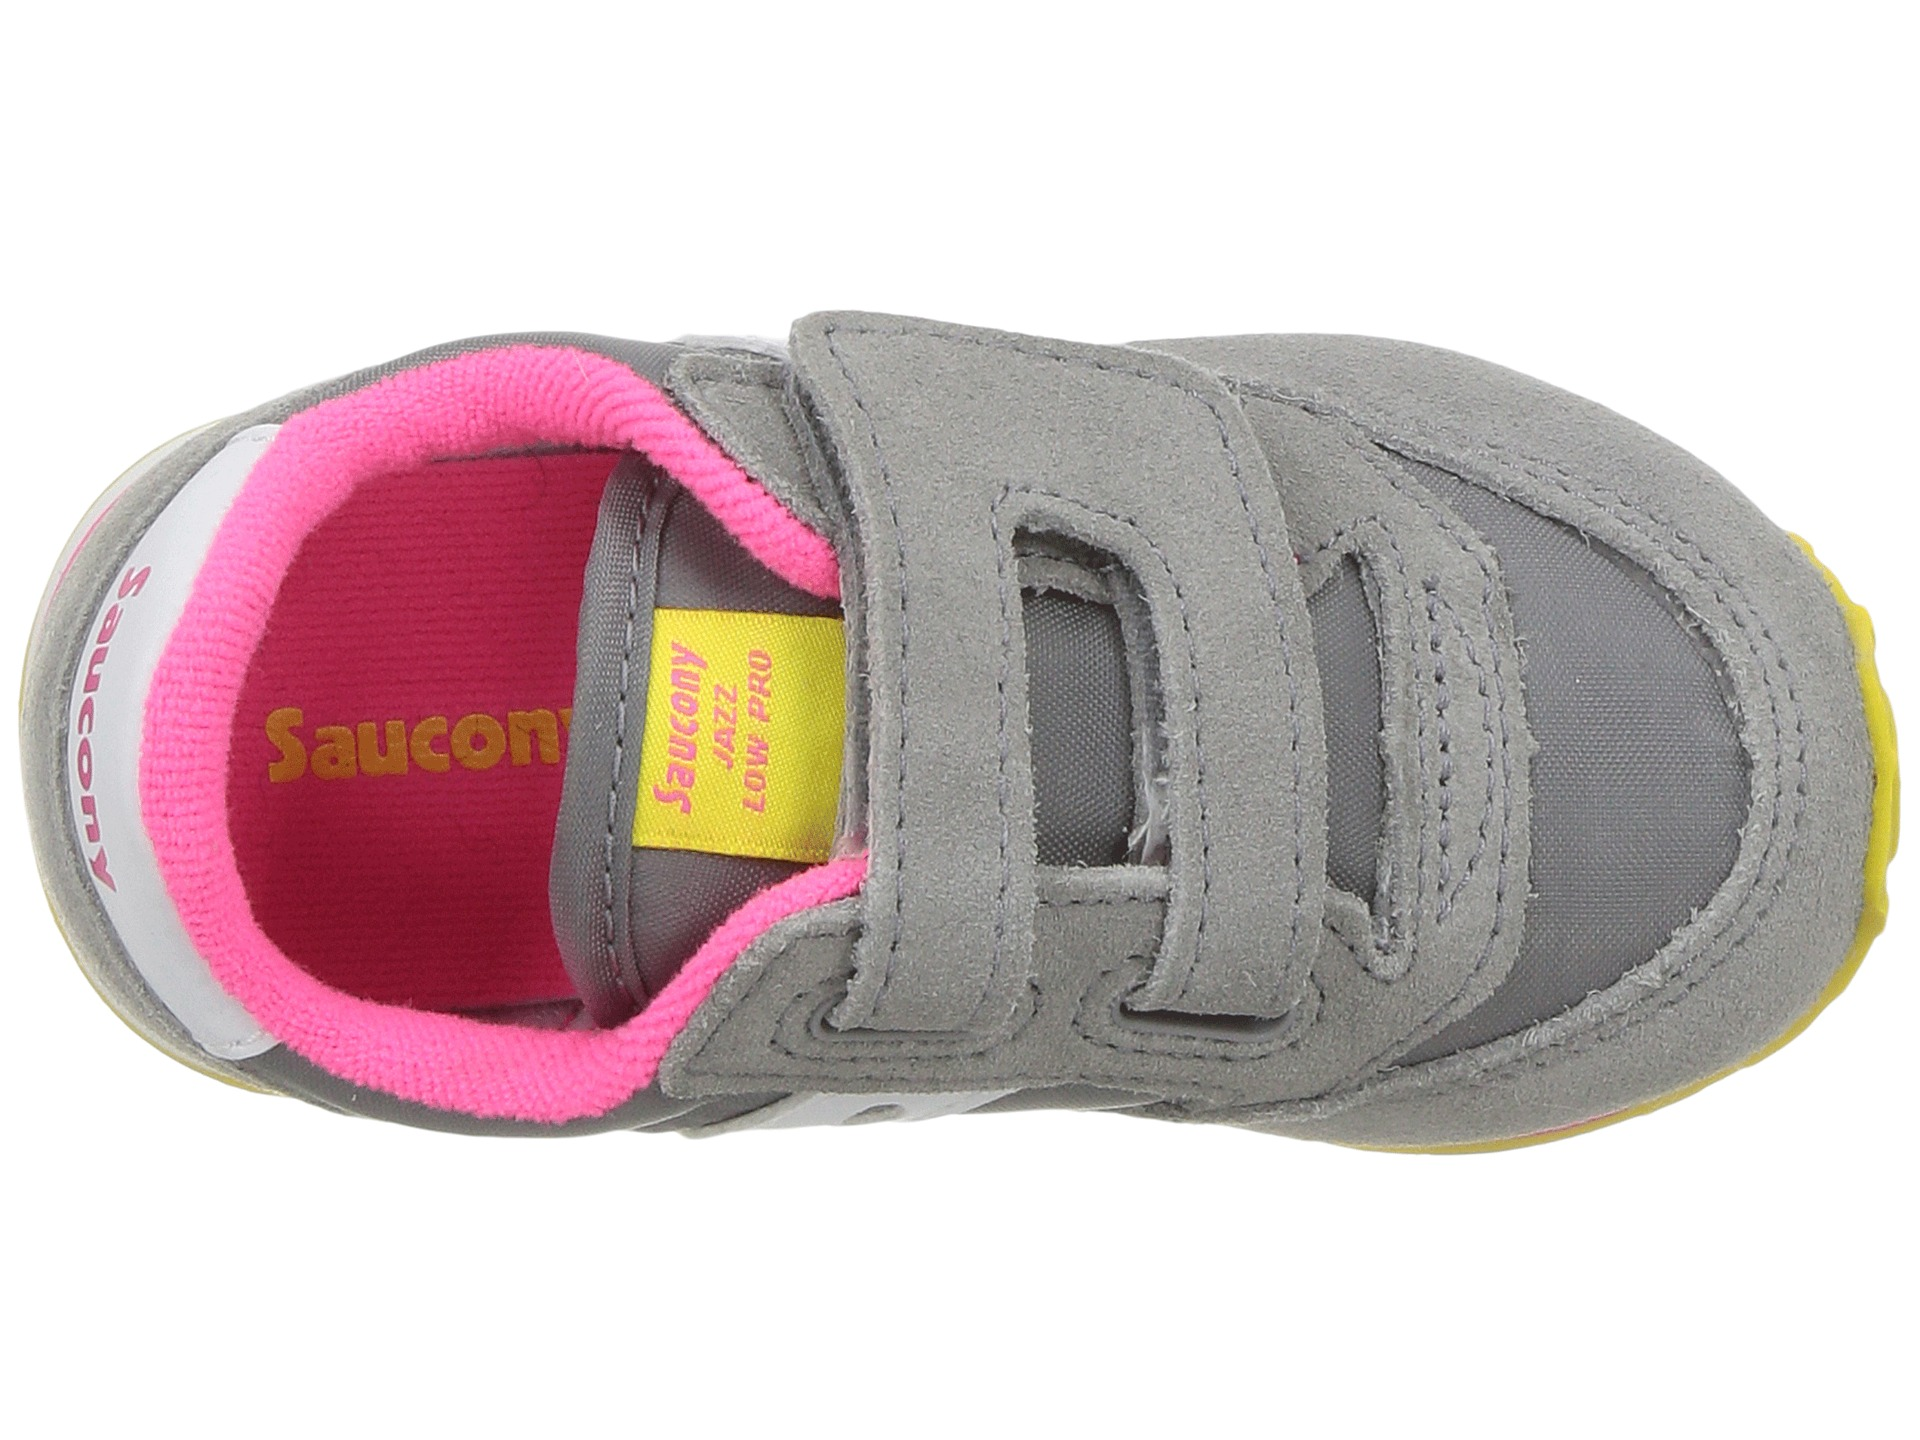 cde466325 Buy saucony shoes kids price   Up to OFF55% Discounted